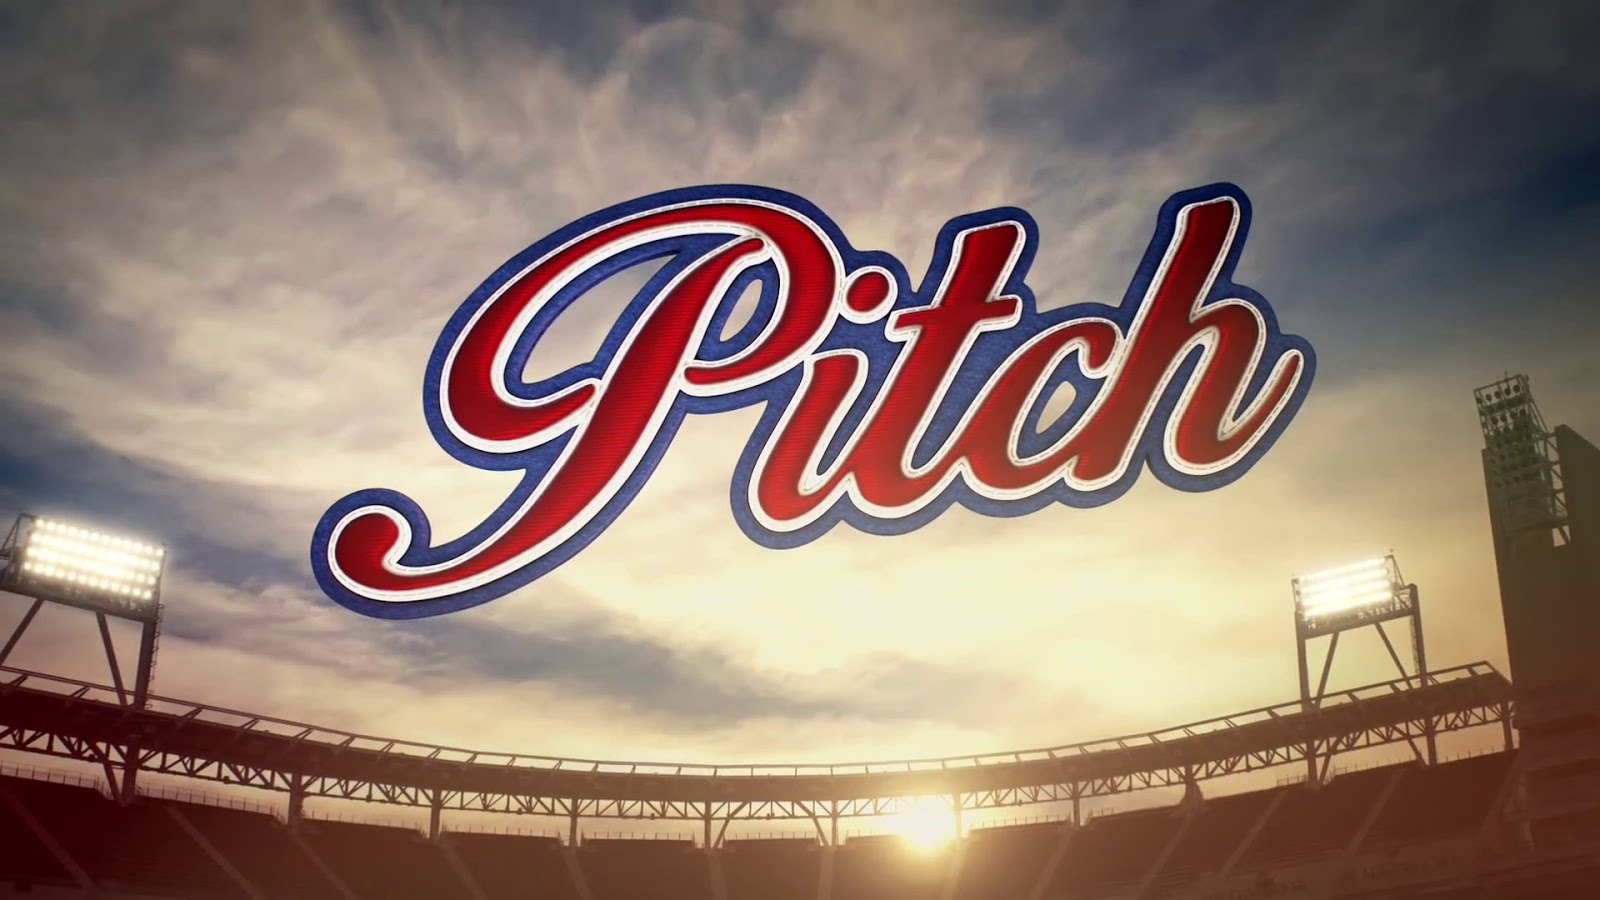 Pitch - Don't Say It - Review